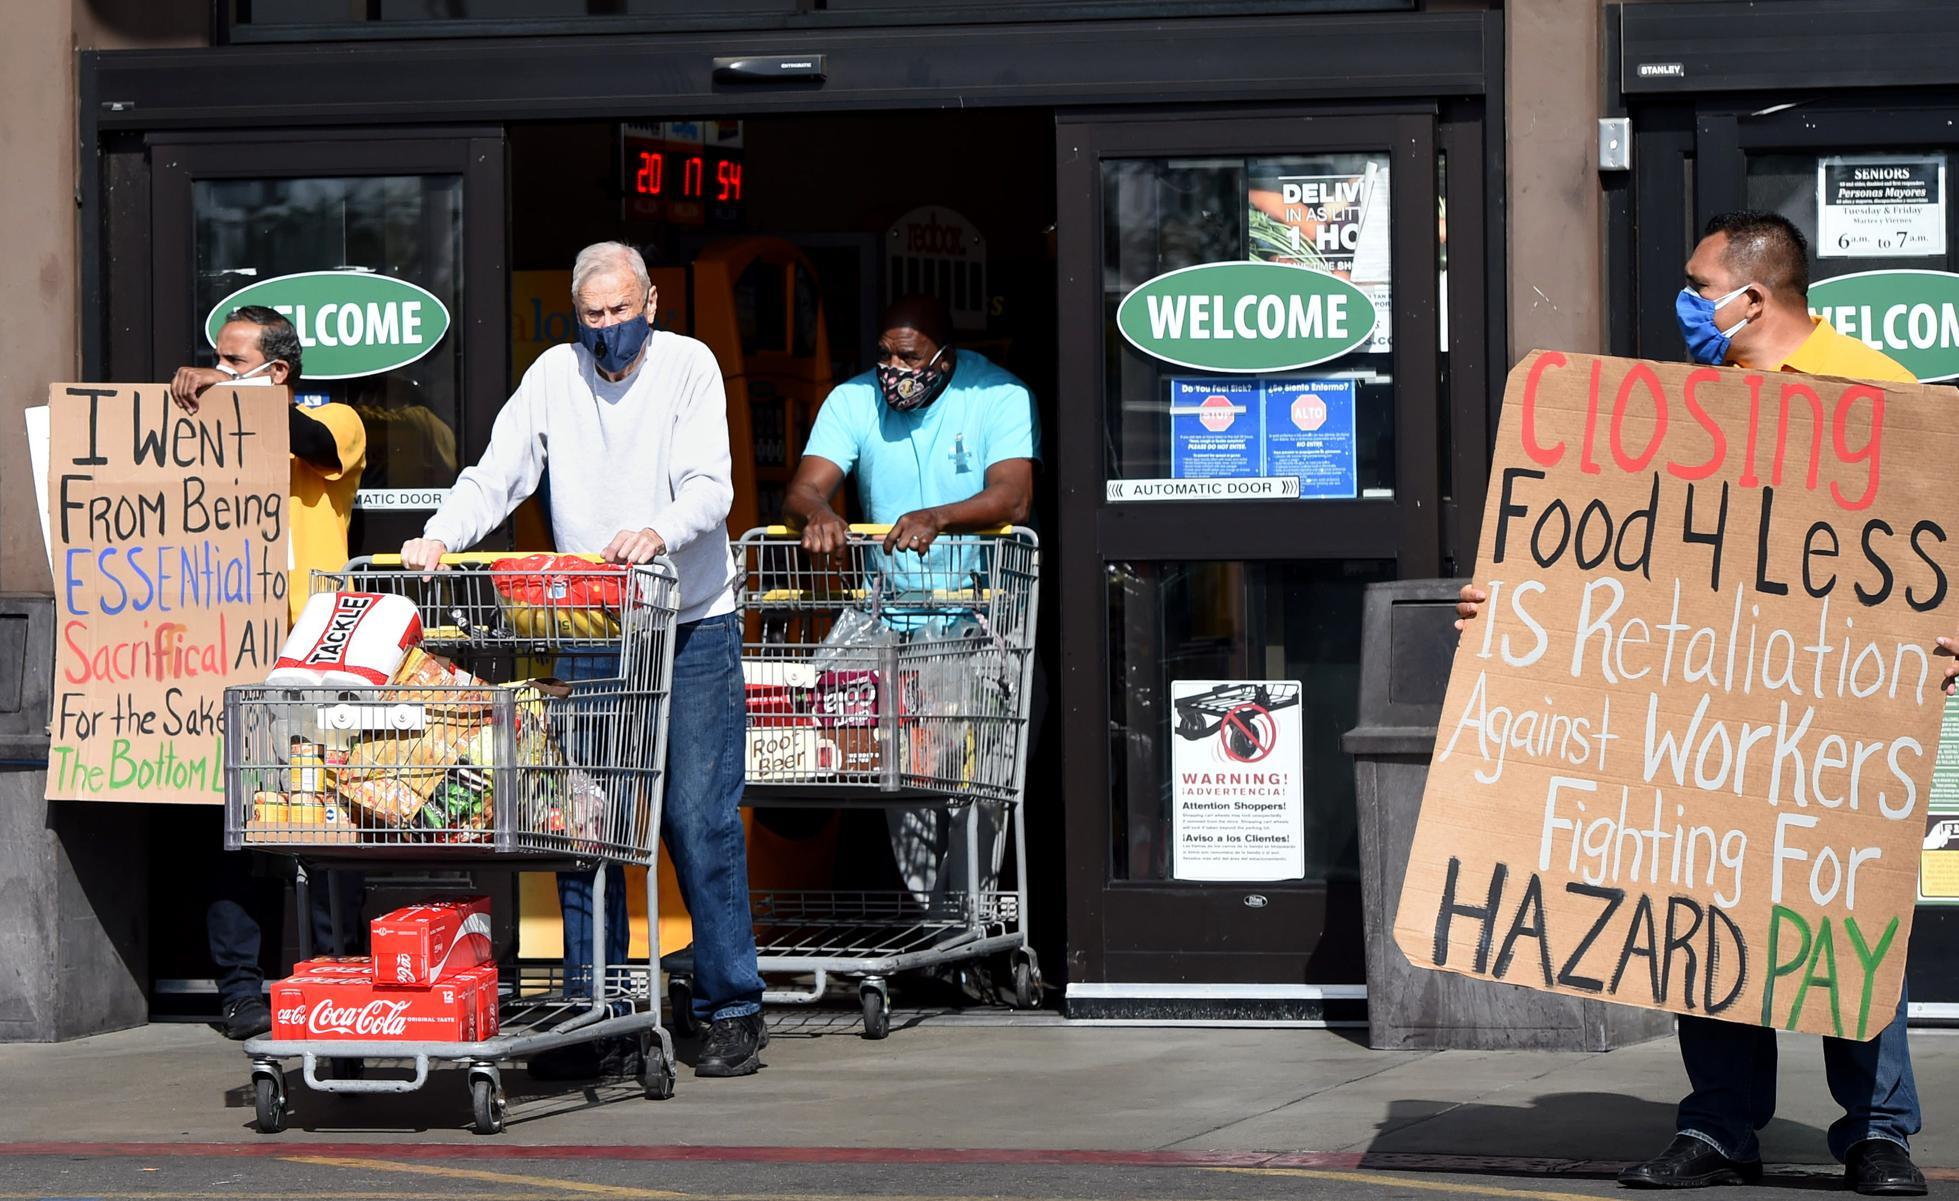 Food 4 Less workers, city leaders and local″nlabor advocates rally against Kroger closing stores and not giving hazard pay requested by the city of Long Beach